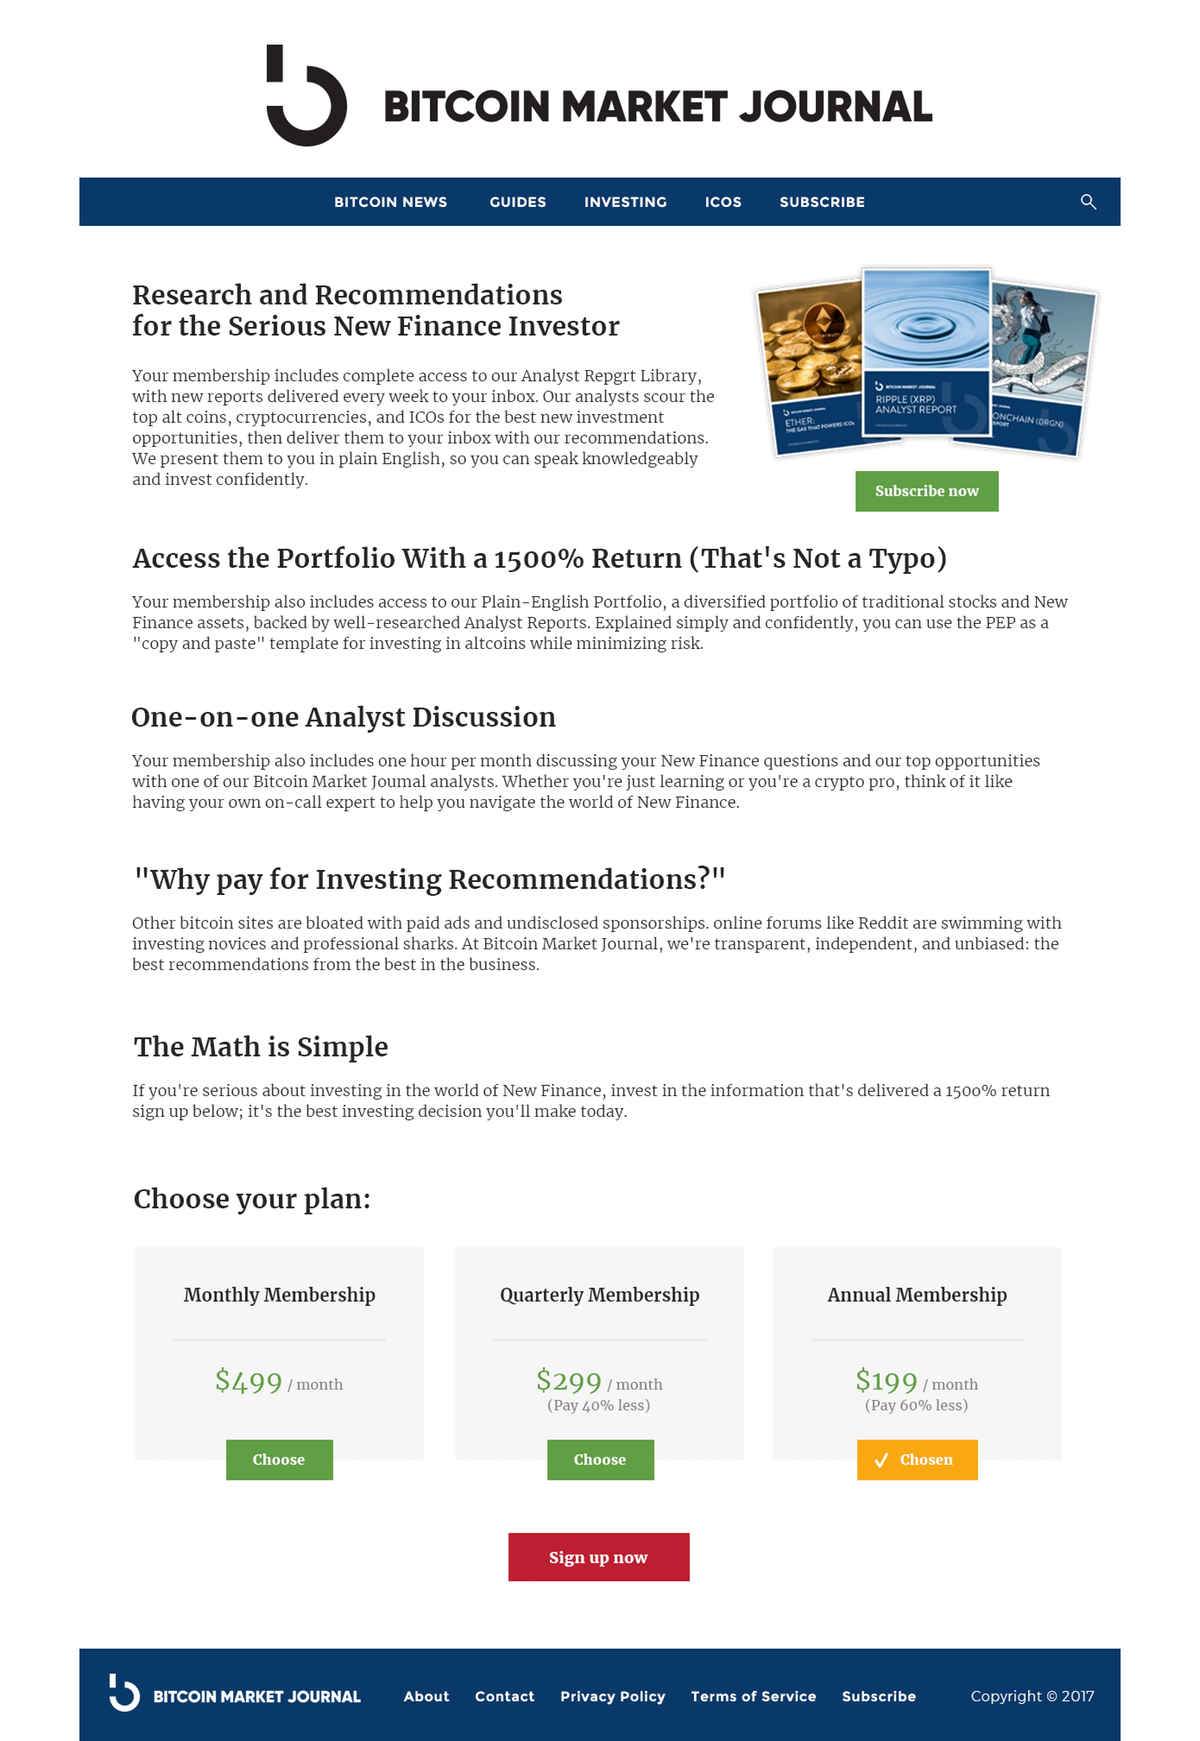 Design a page for our Bitcoin Market Journal Website